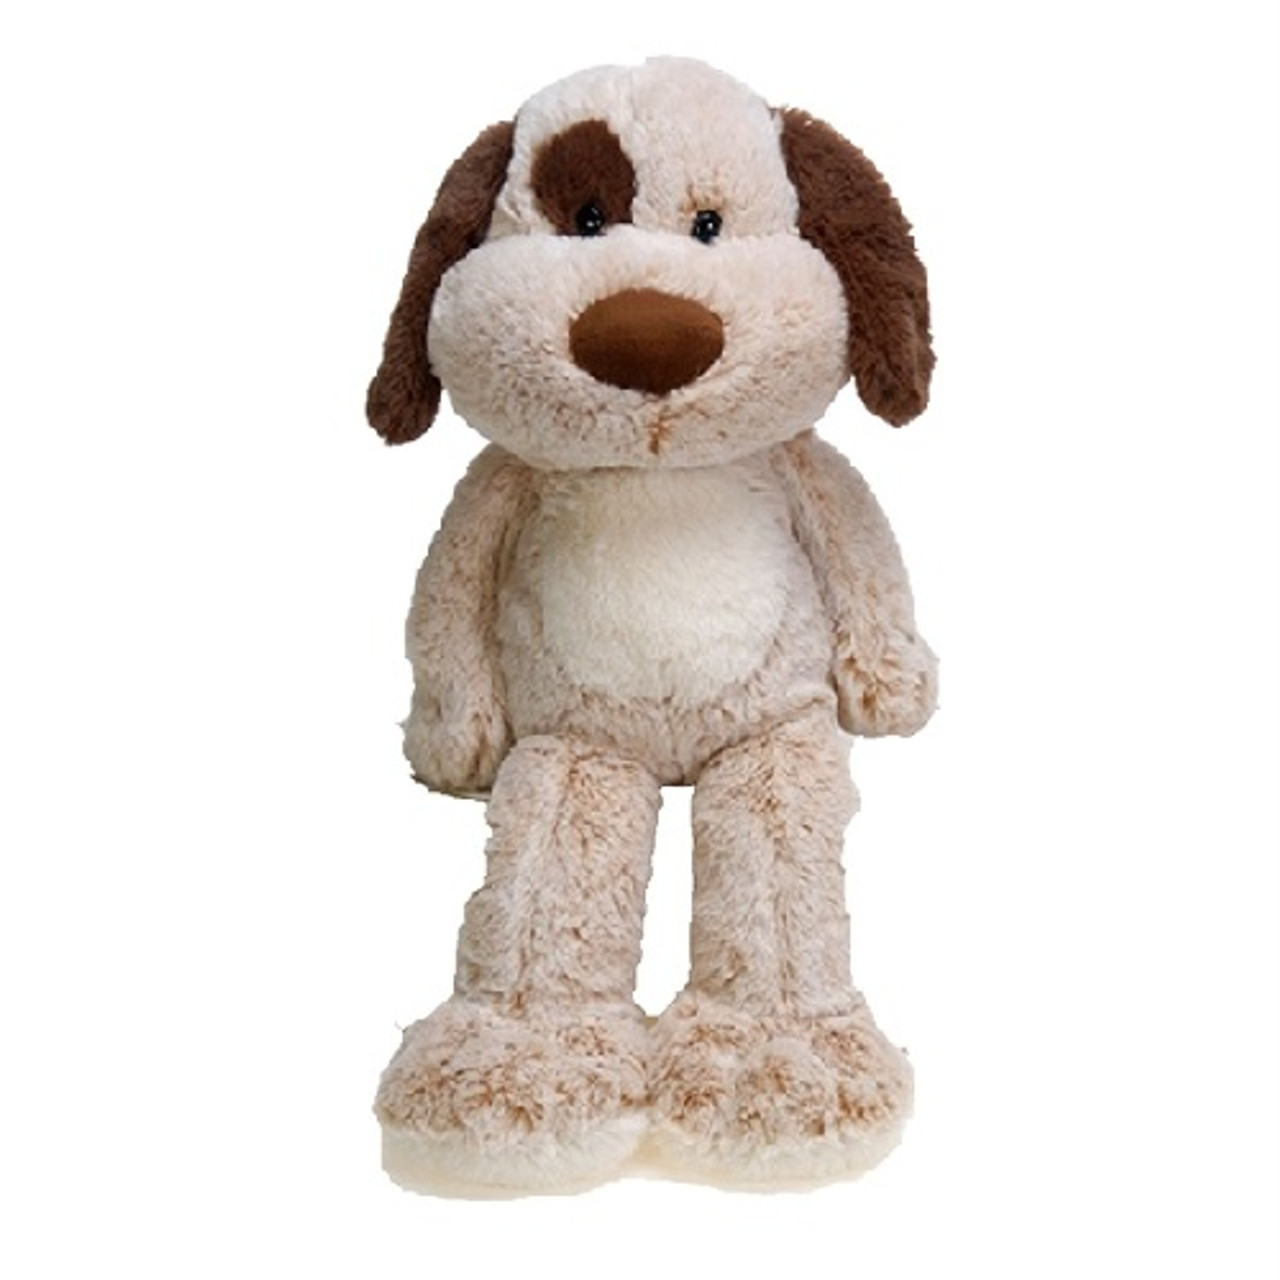 Weighted Stuffed Animals For Kids With Autism And Sensory Processing